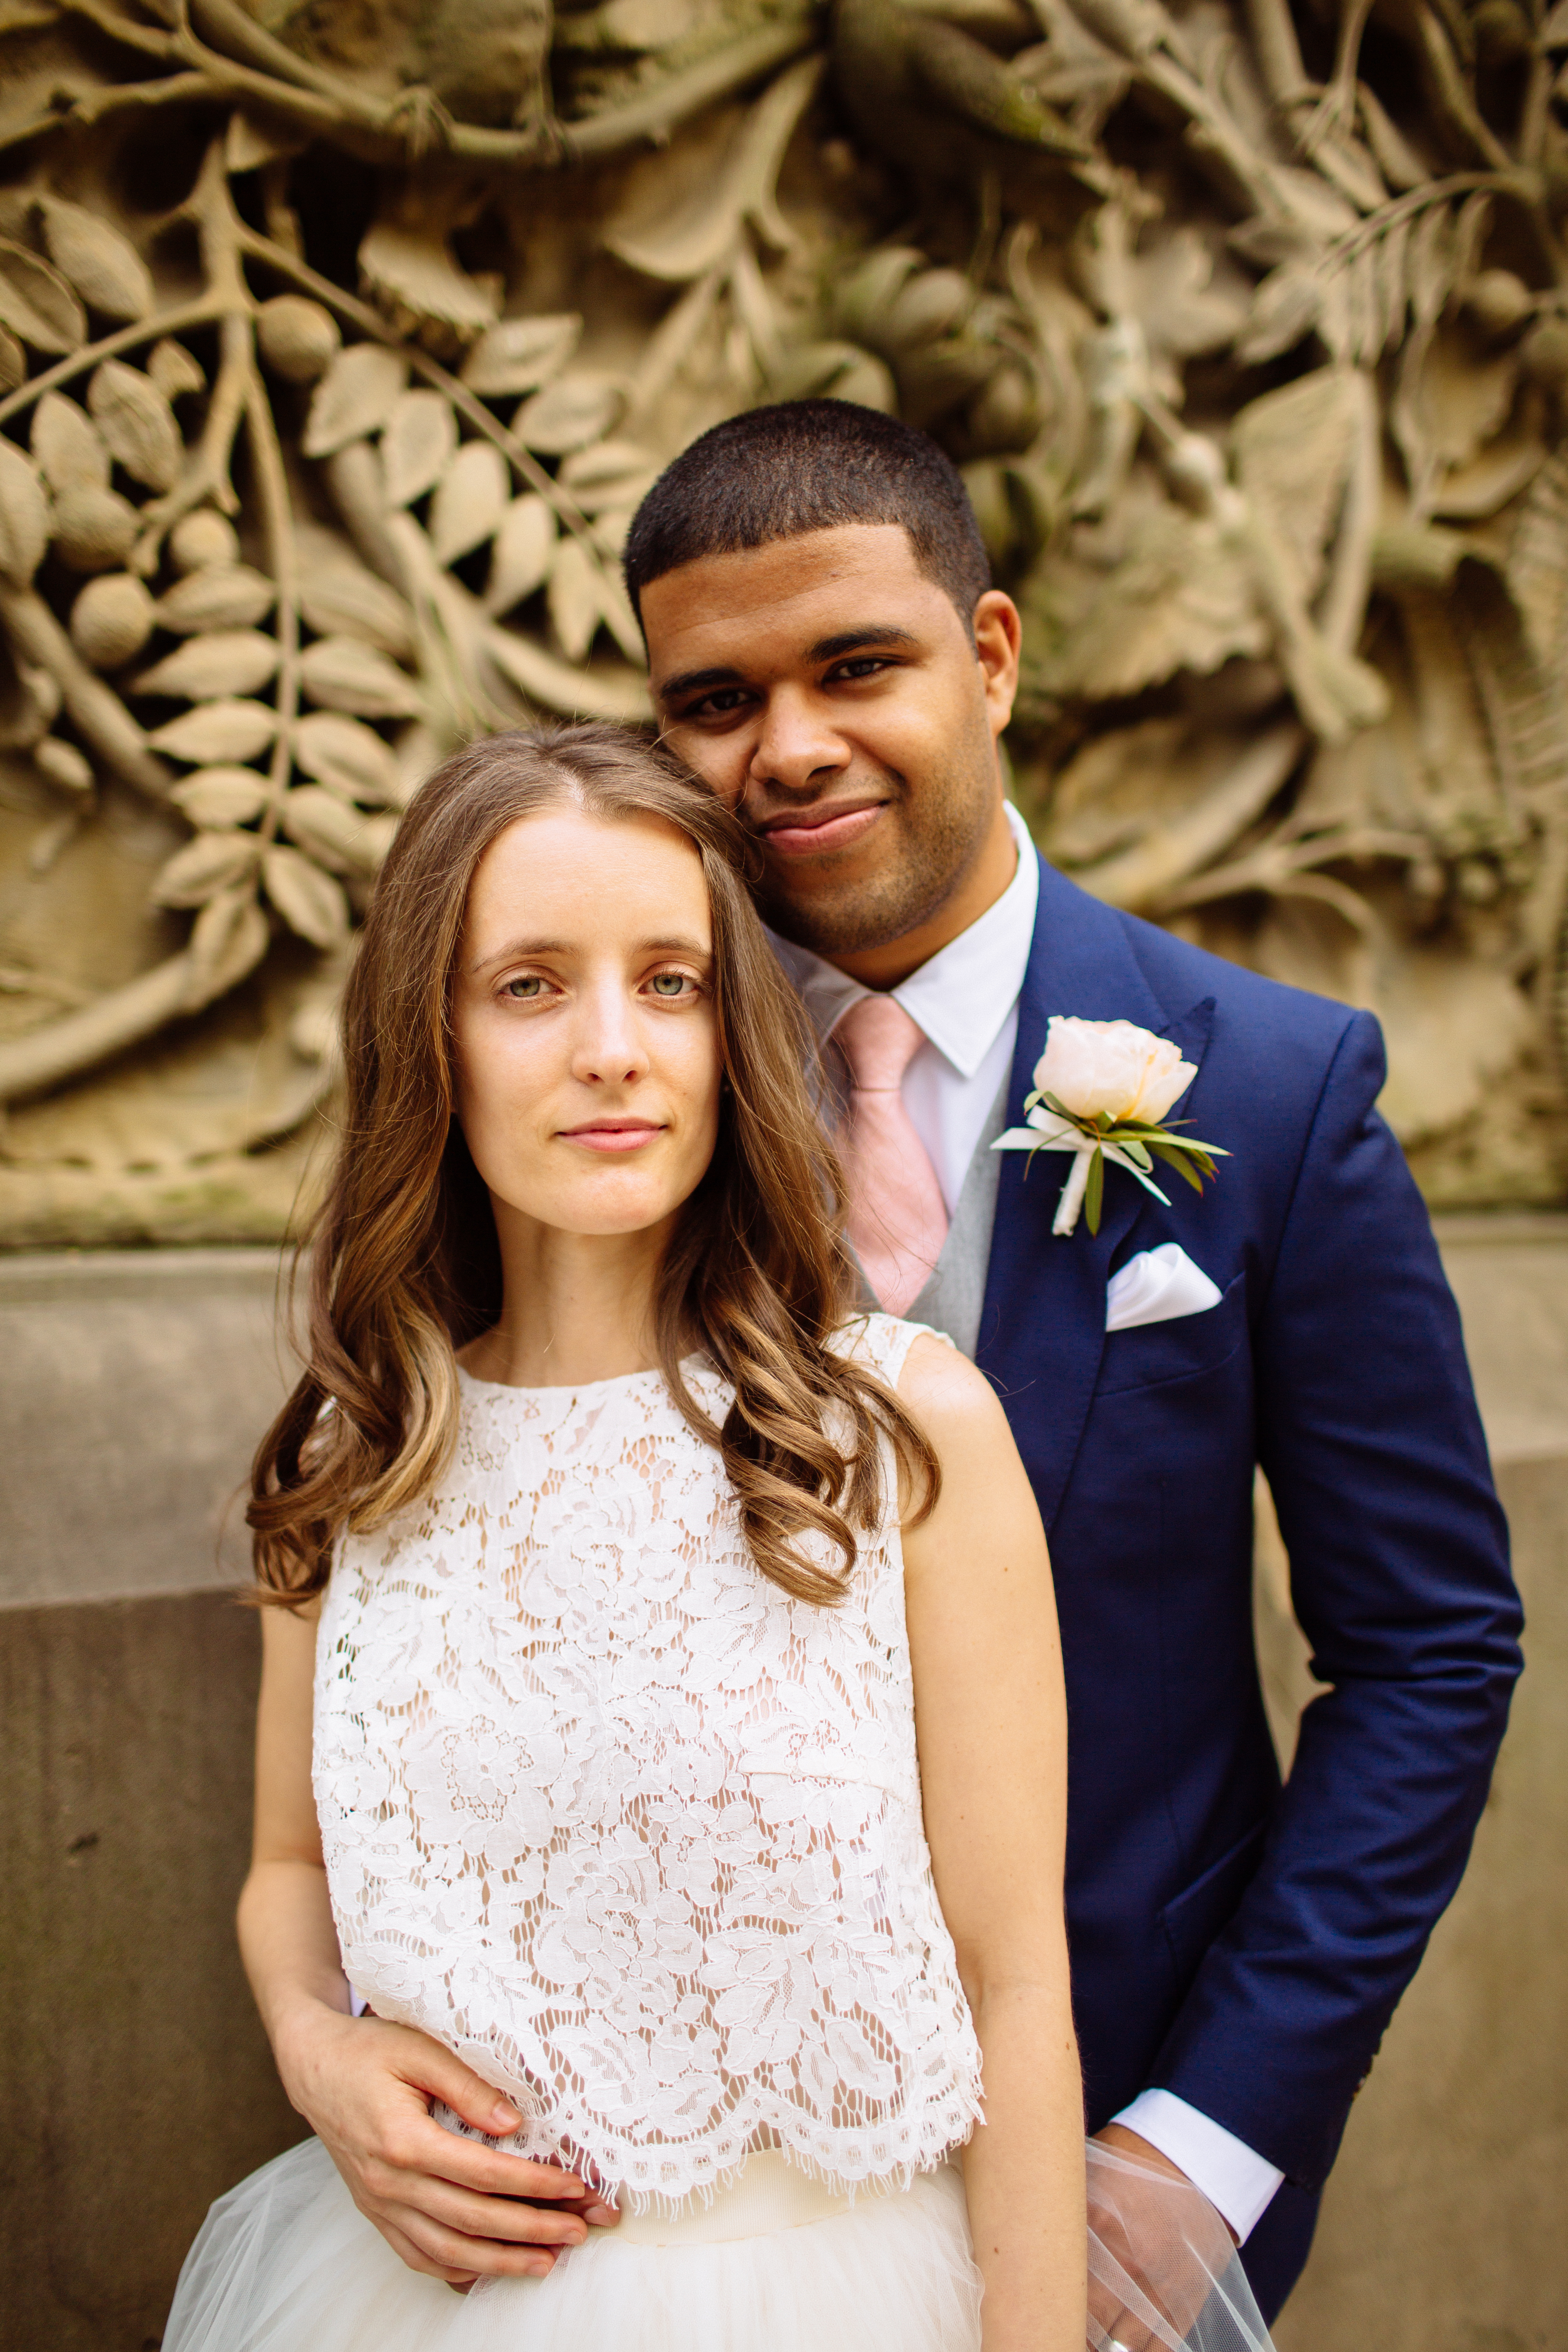 Wedding Photos in New York Lace dress blue suit